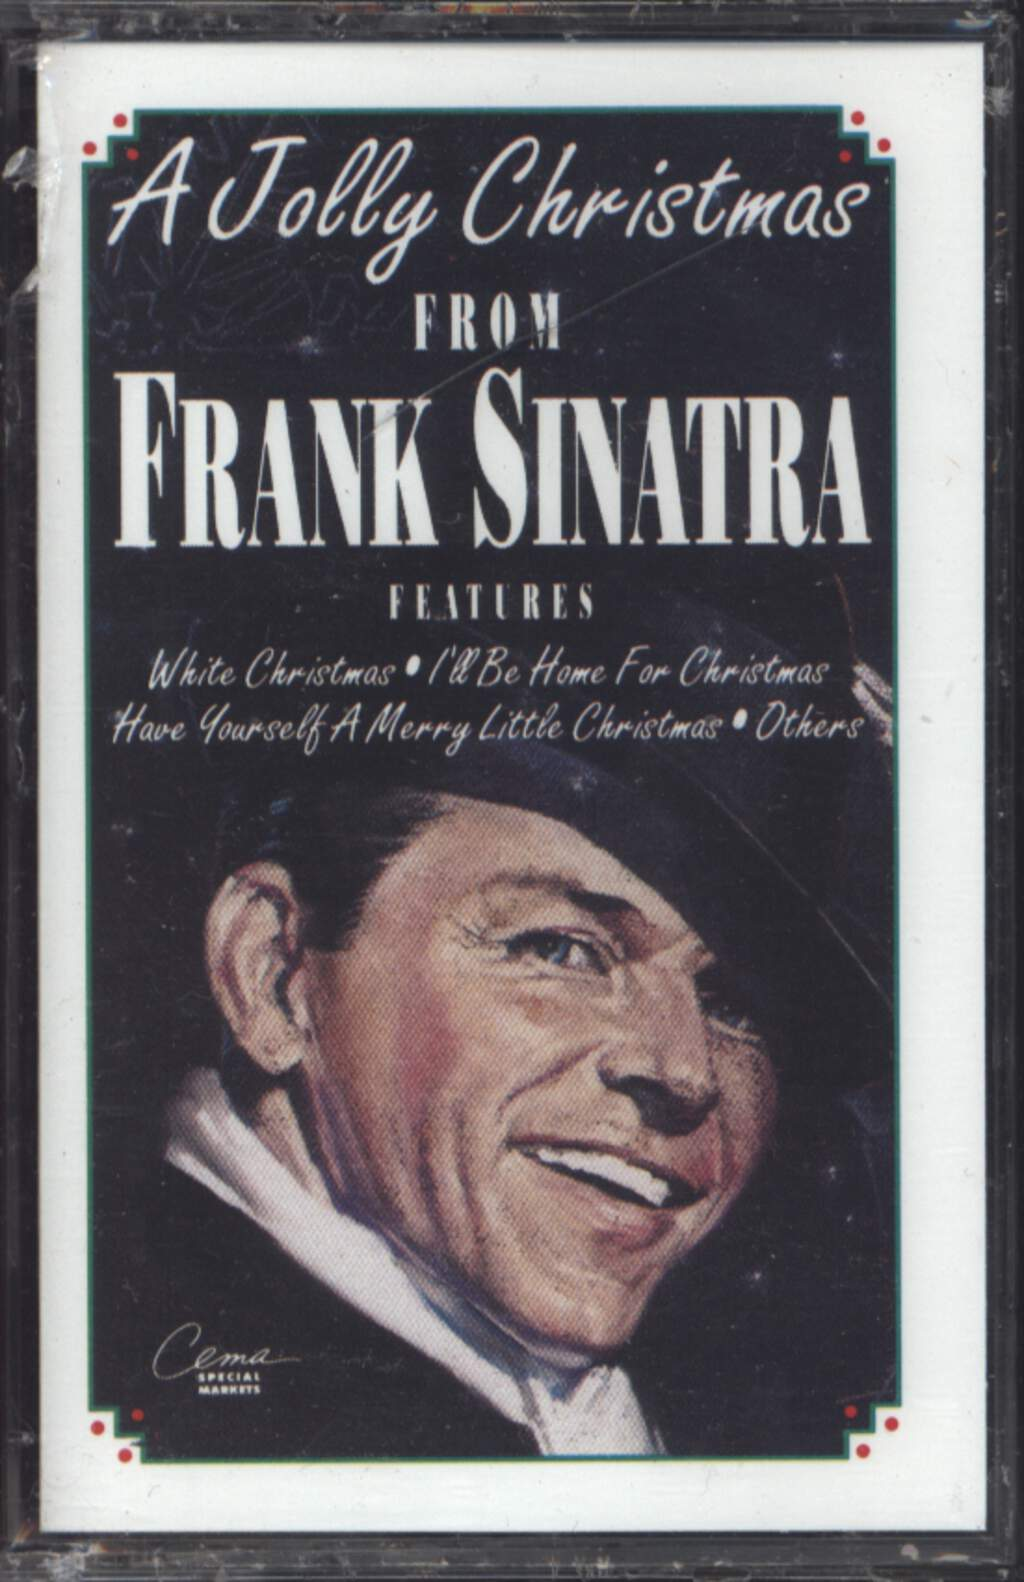 Frank Sinatra: A Jolly Christmas From Frank Sinatra, Compact Cassette